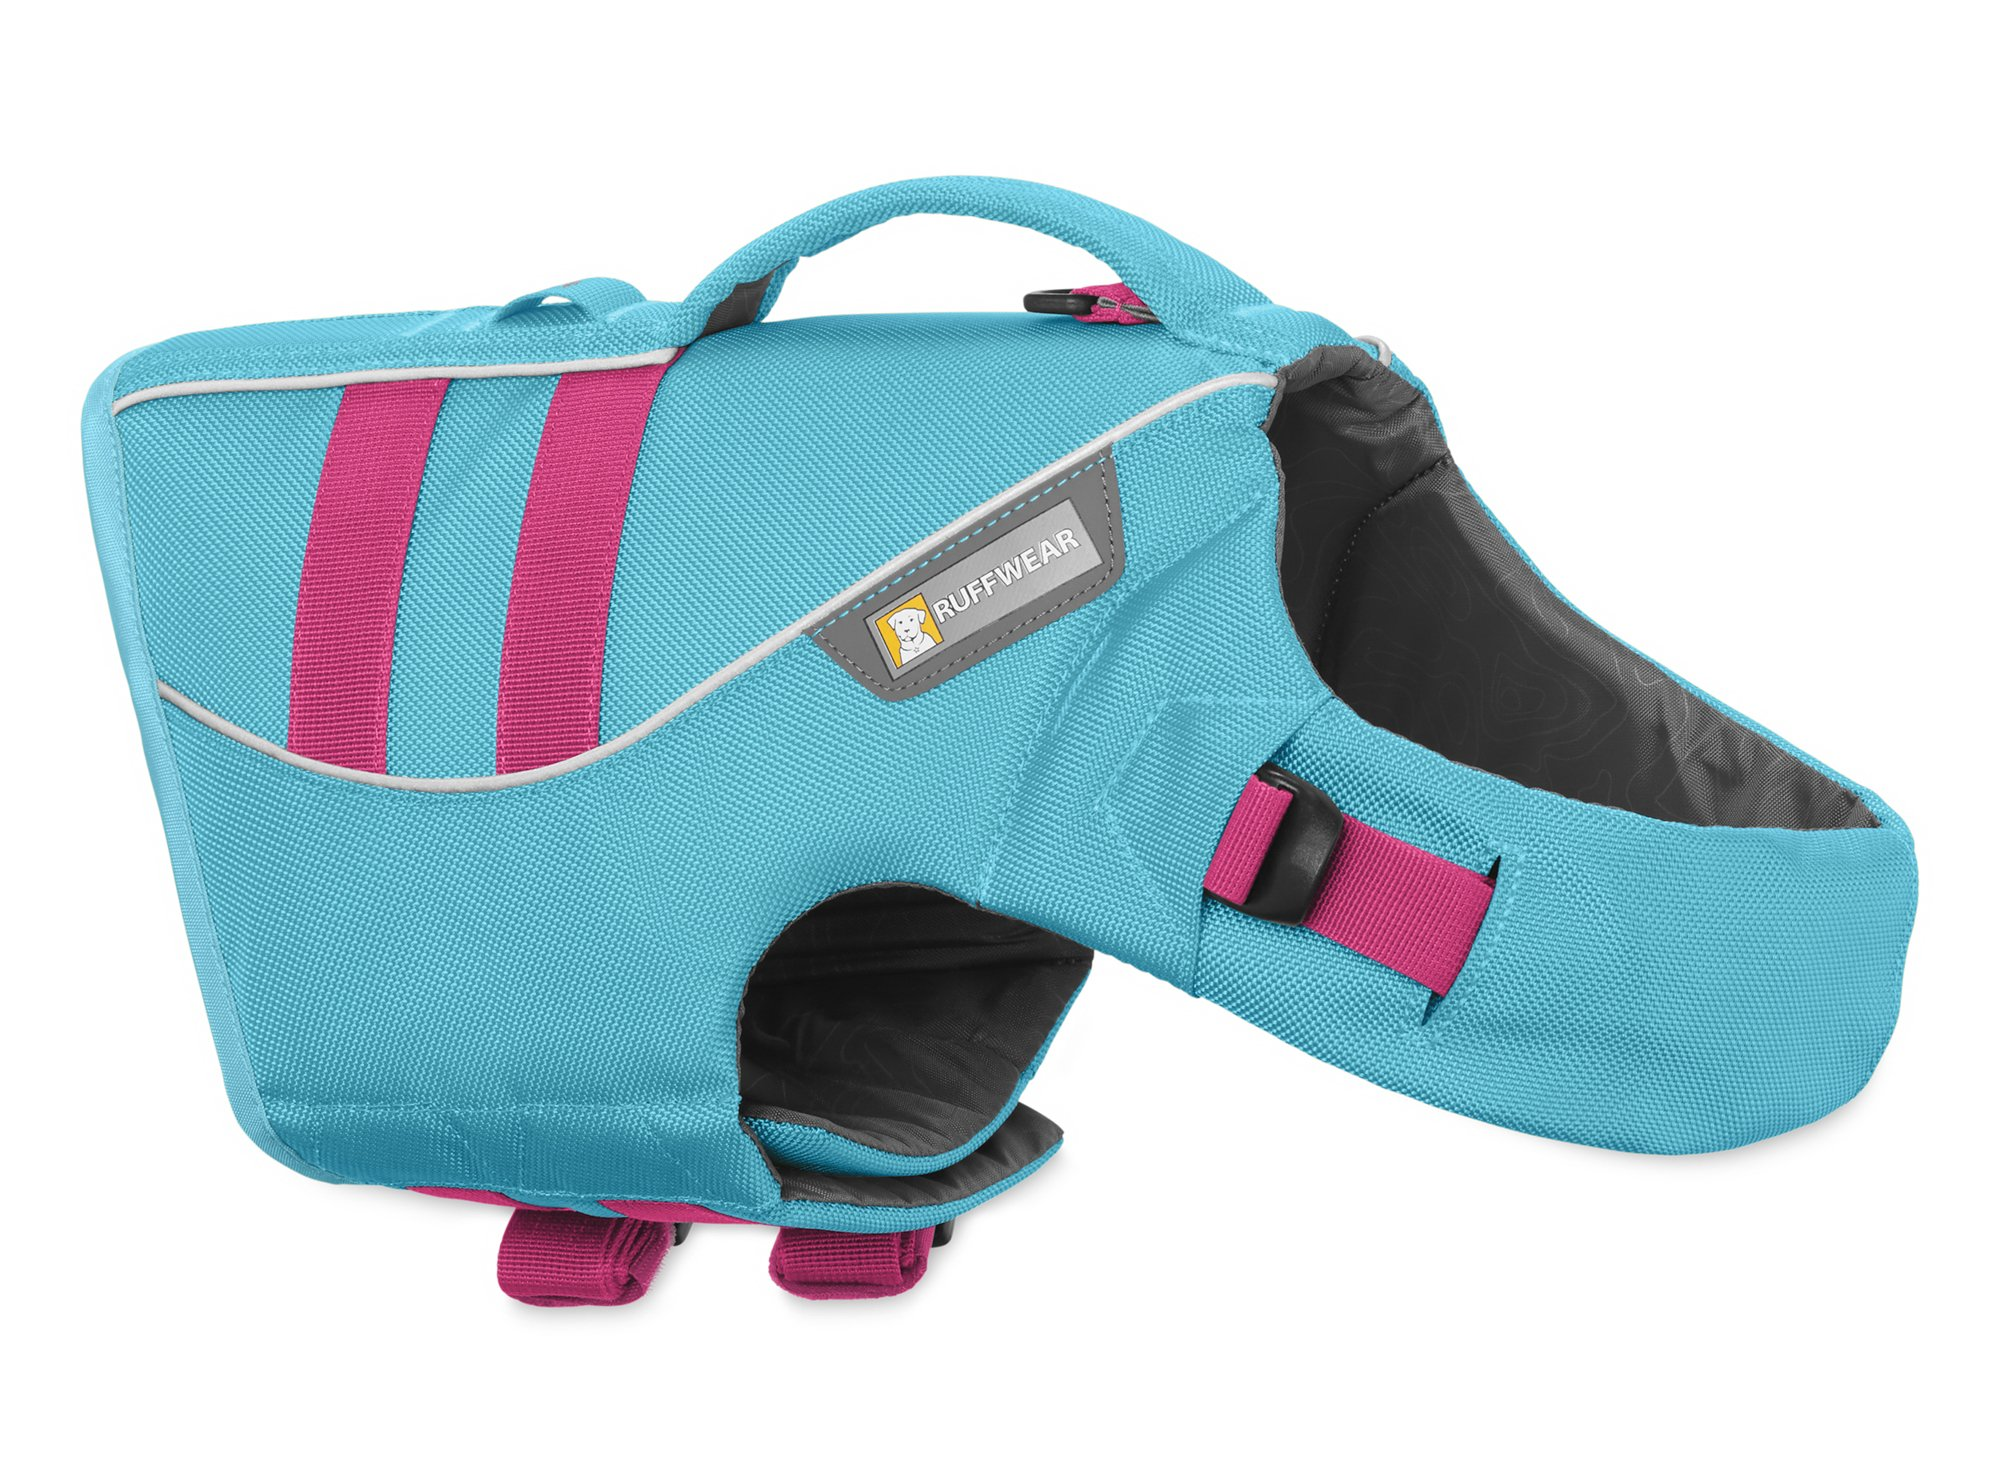 RUFFWEAR - Float Coat Reflective Life Jacket for Dogs, Blue Atoll, Large